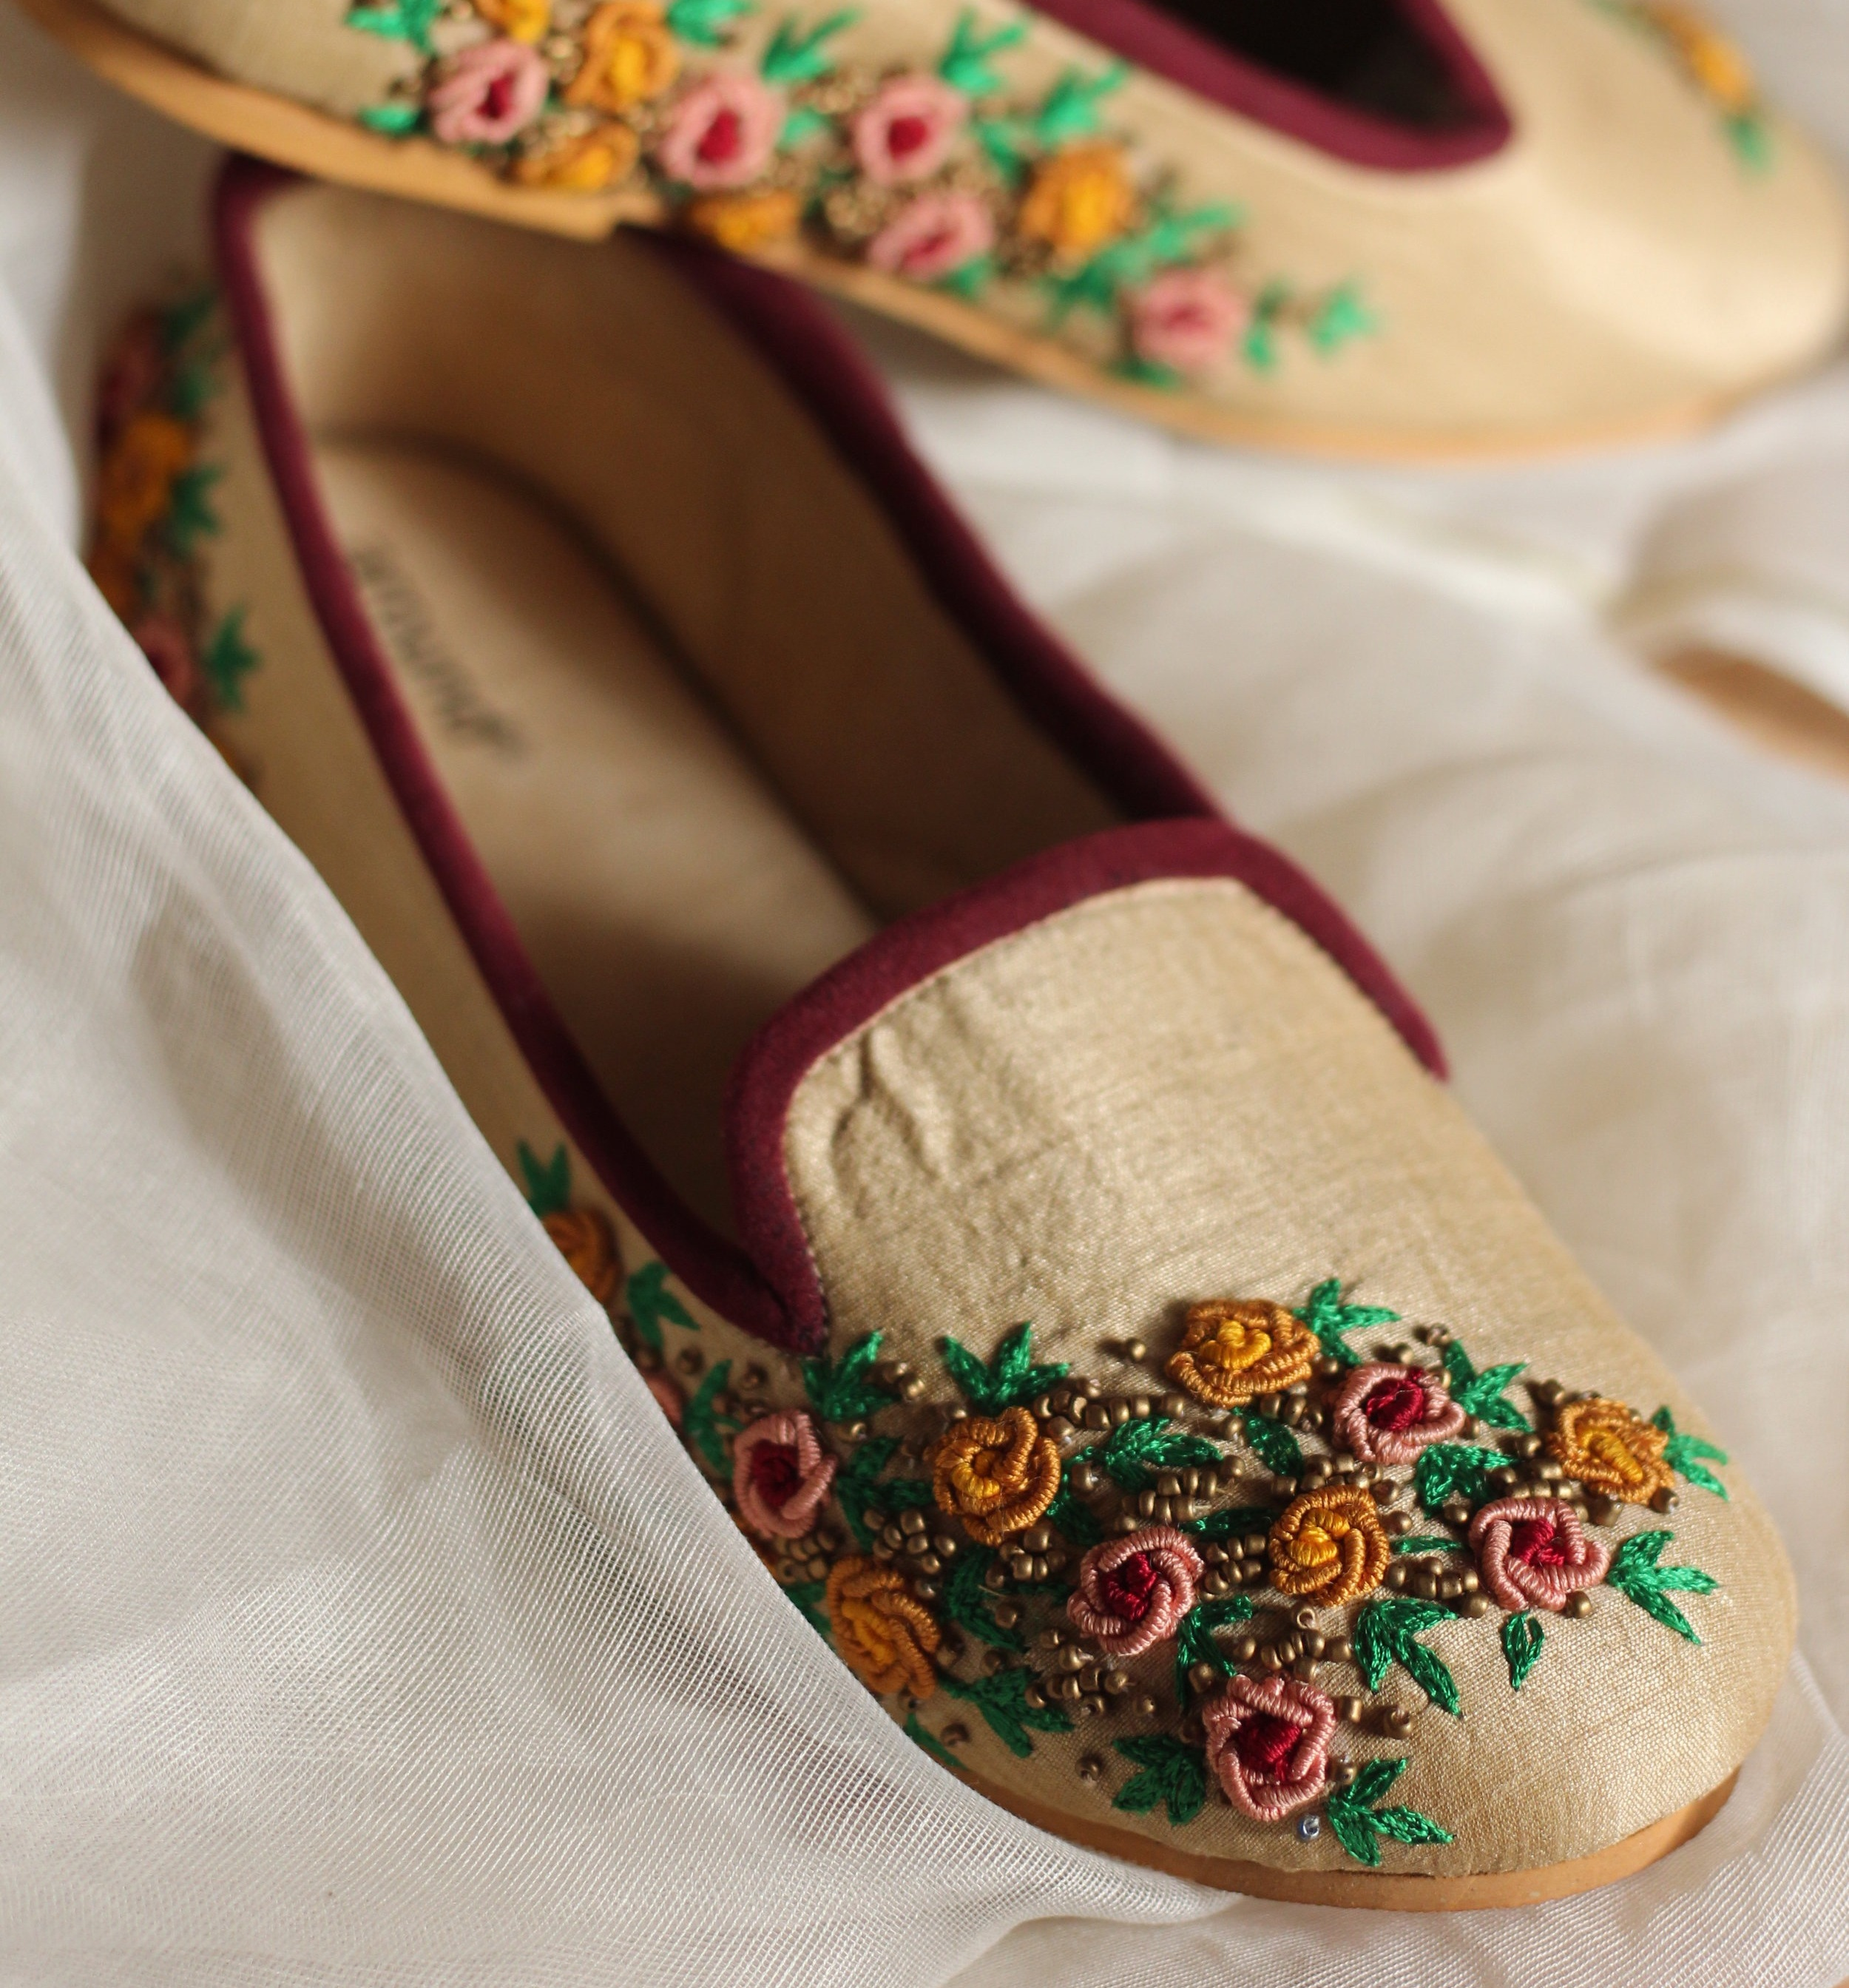 GARDEN OF ROSES - The French couple represents the epitome of romance and these loafers with french knot roses will set pace for the journey you are about to begin!